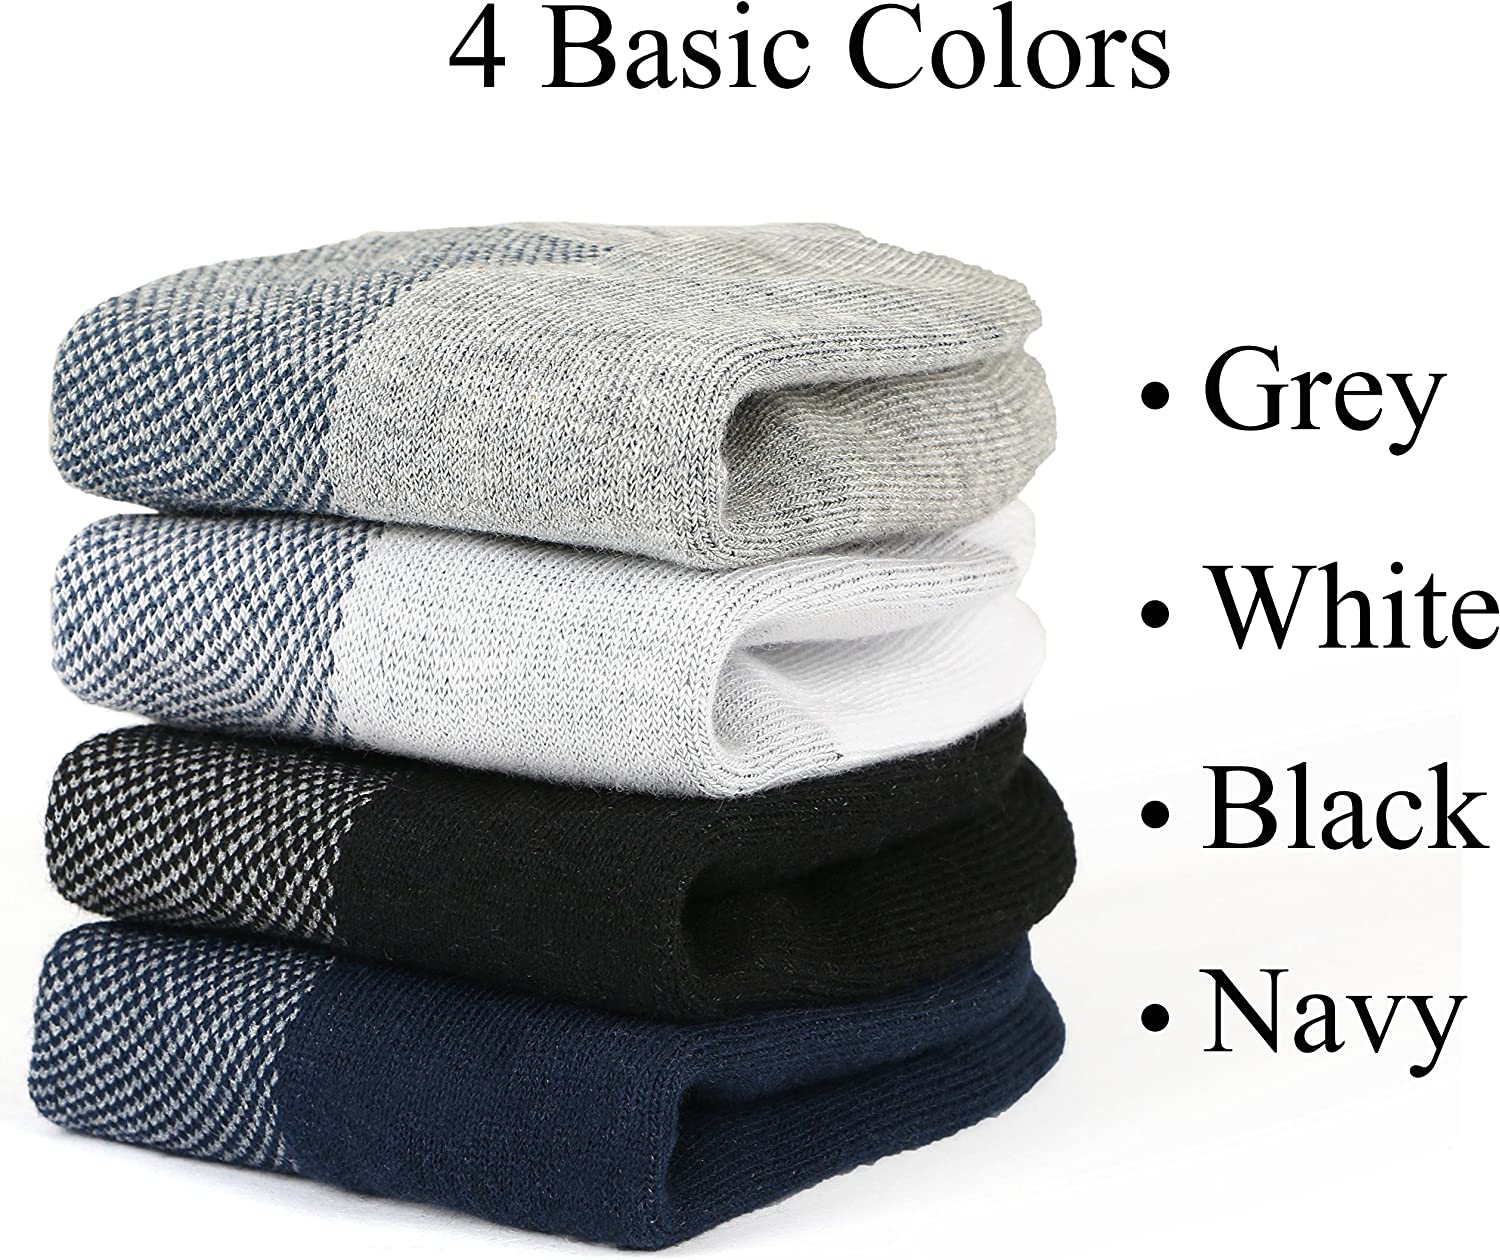 M/&Z Mens Ankle Low Cut Socks Super Comfy Cotton Casual Non-Slip Socks Upgraded 8 Pairs S M L